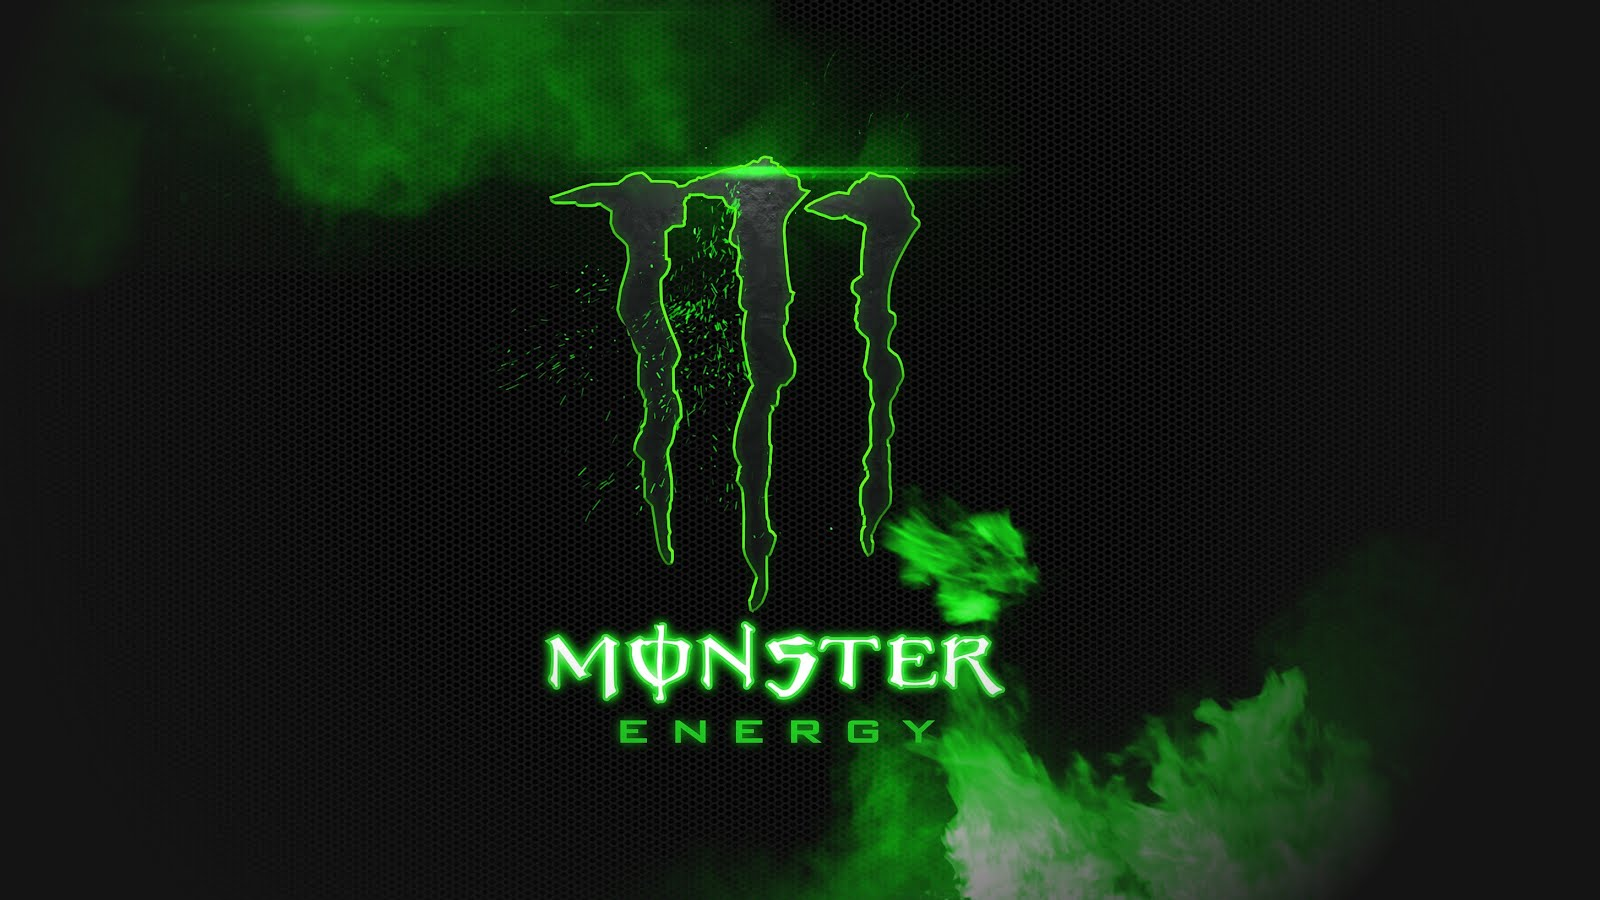 Monster Energy Drink Wallpaper 23 Cool Hd Wallpaper 1600x900